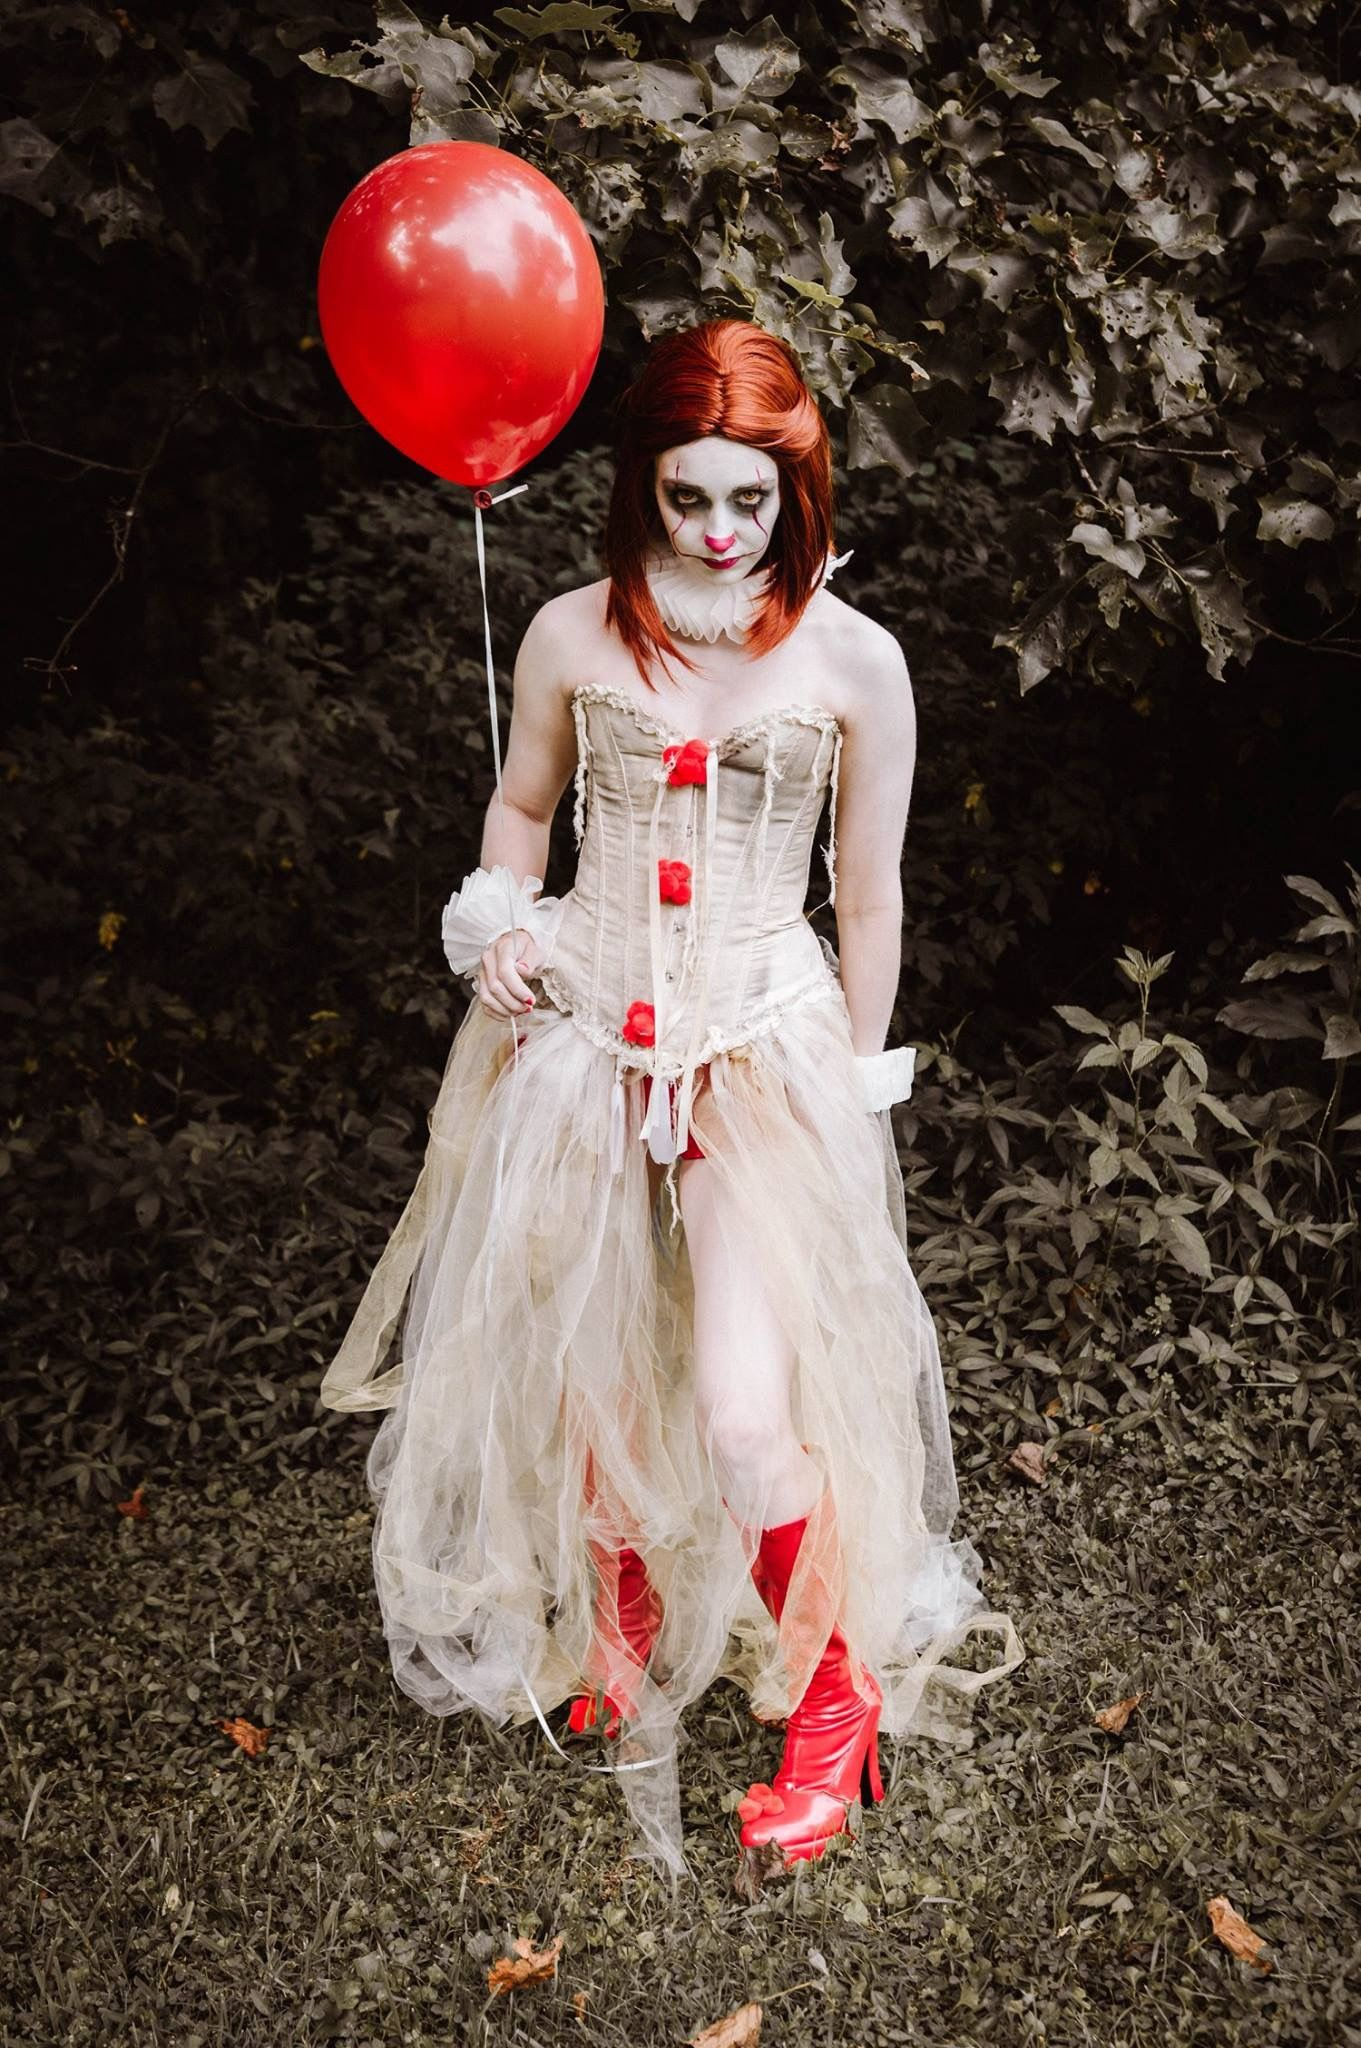 My fun, feminine twist on Pennywise the dancing clown IT